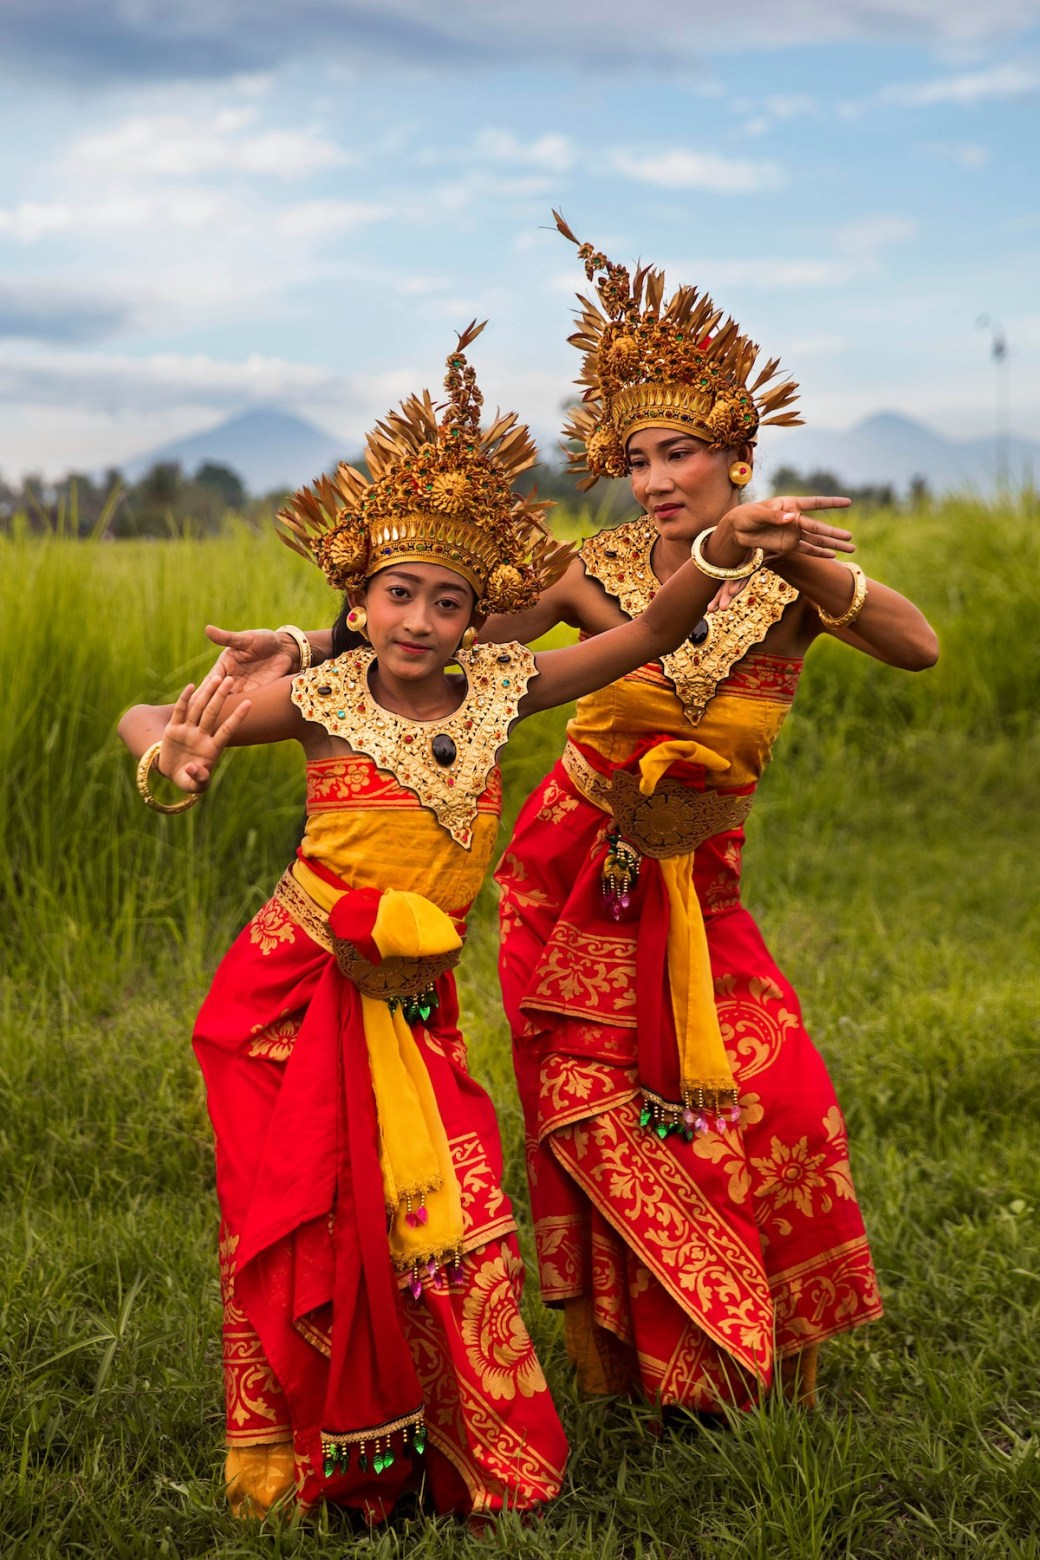 Mother and daughter in Bali doing a traditional dance